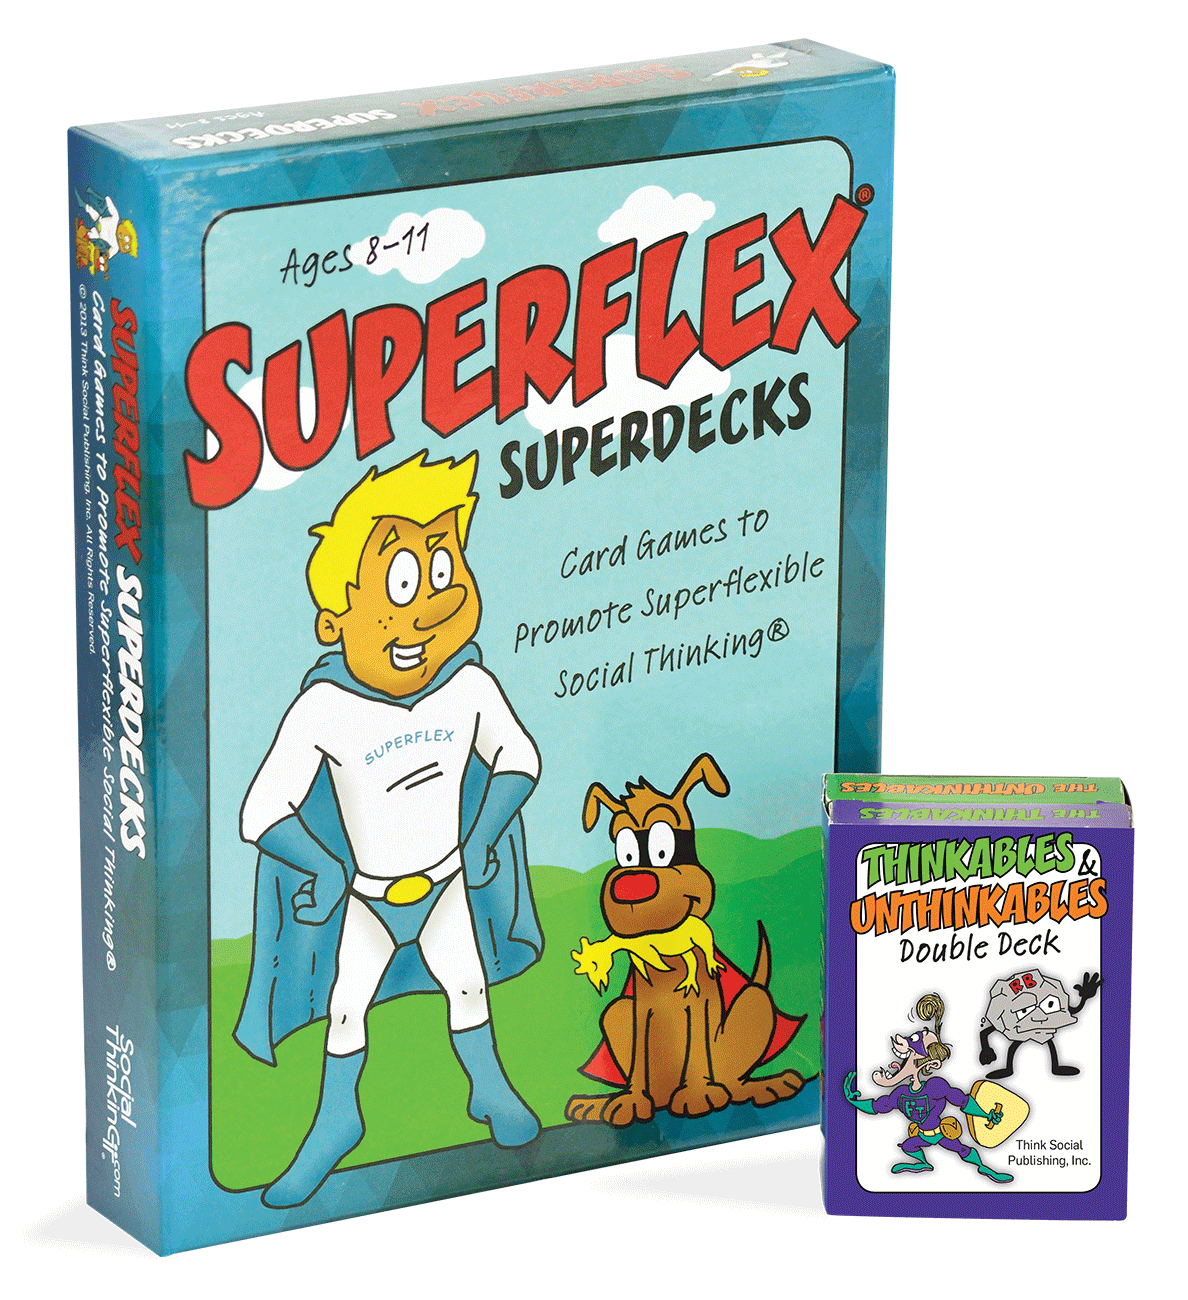 Superflex Superdecks and Double Deck Bundle